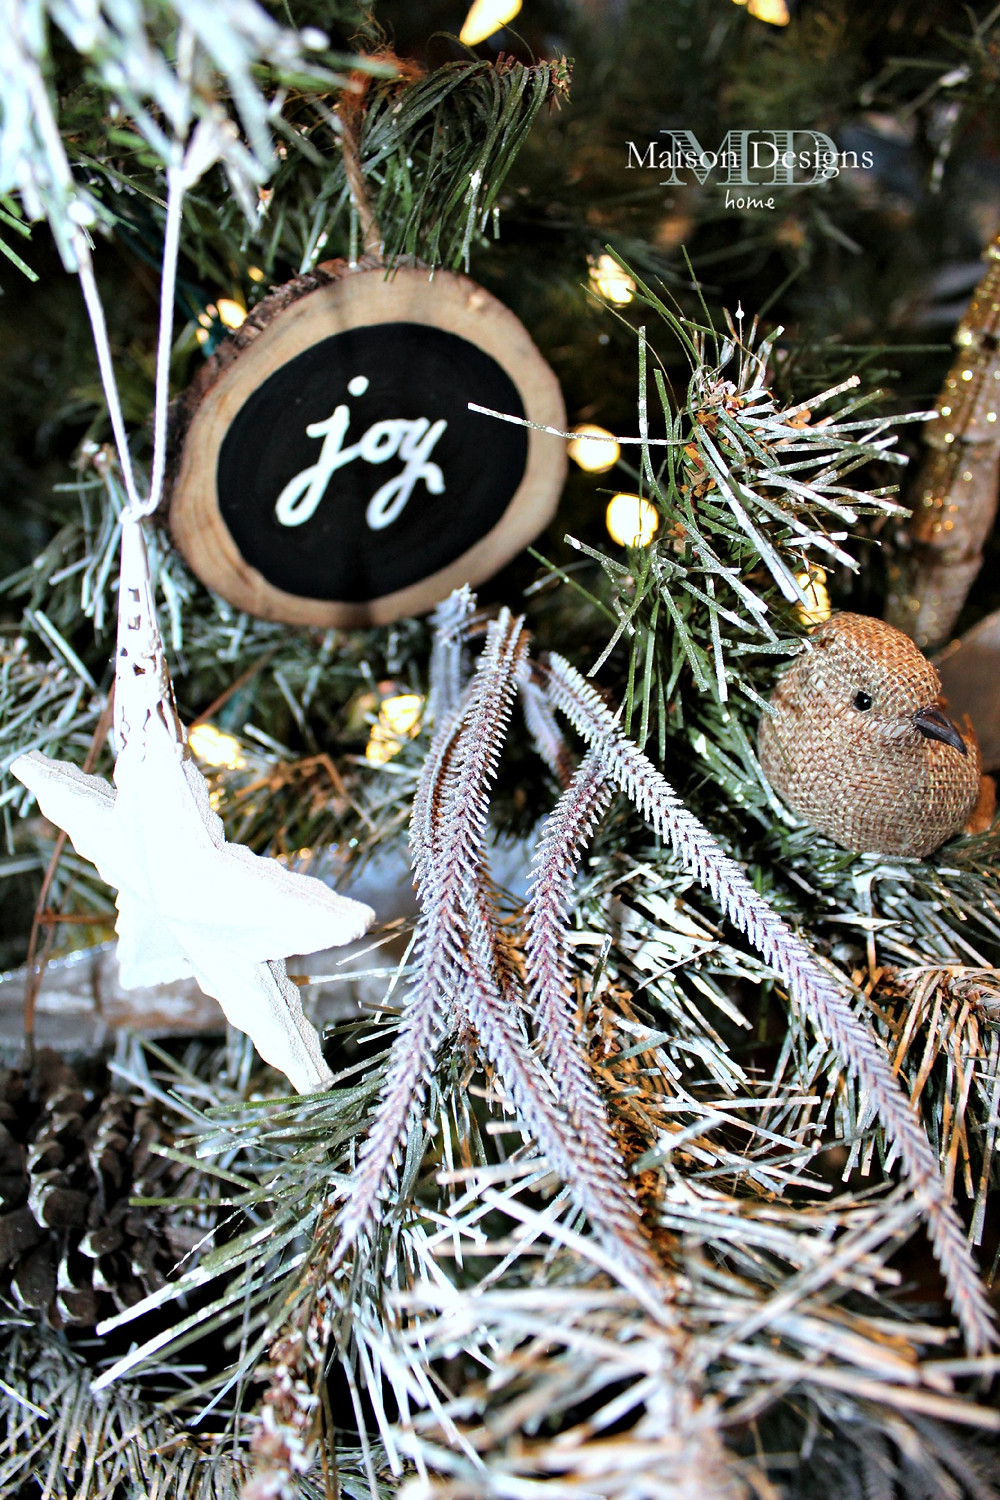 DIY Ornaments-Maison Designs Home